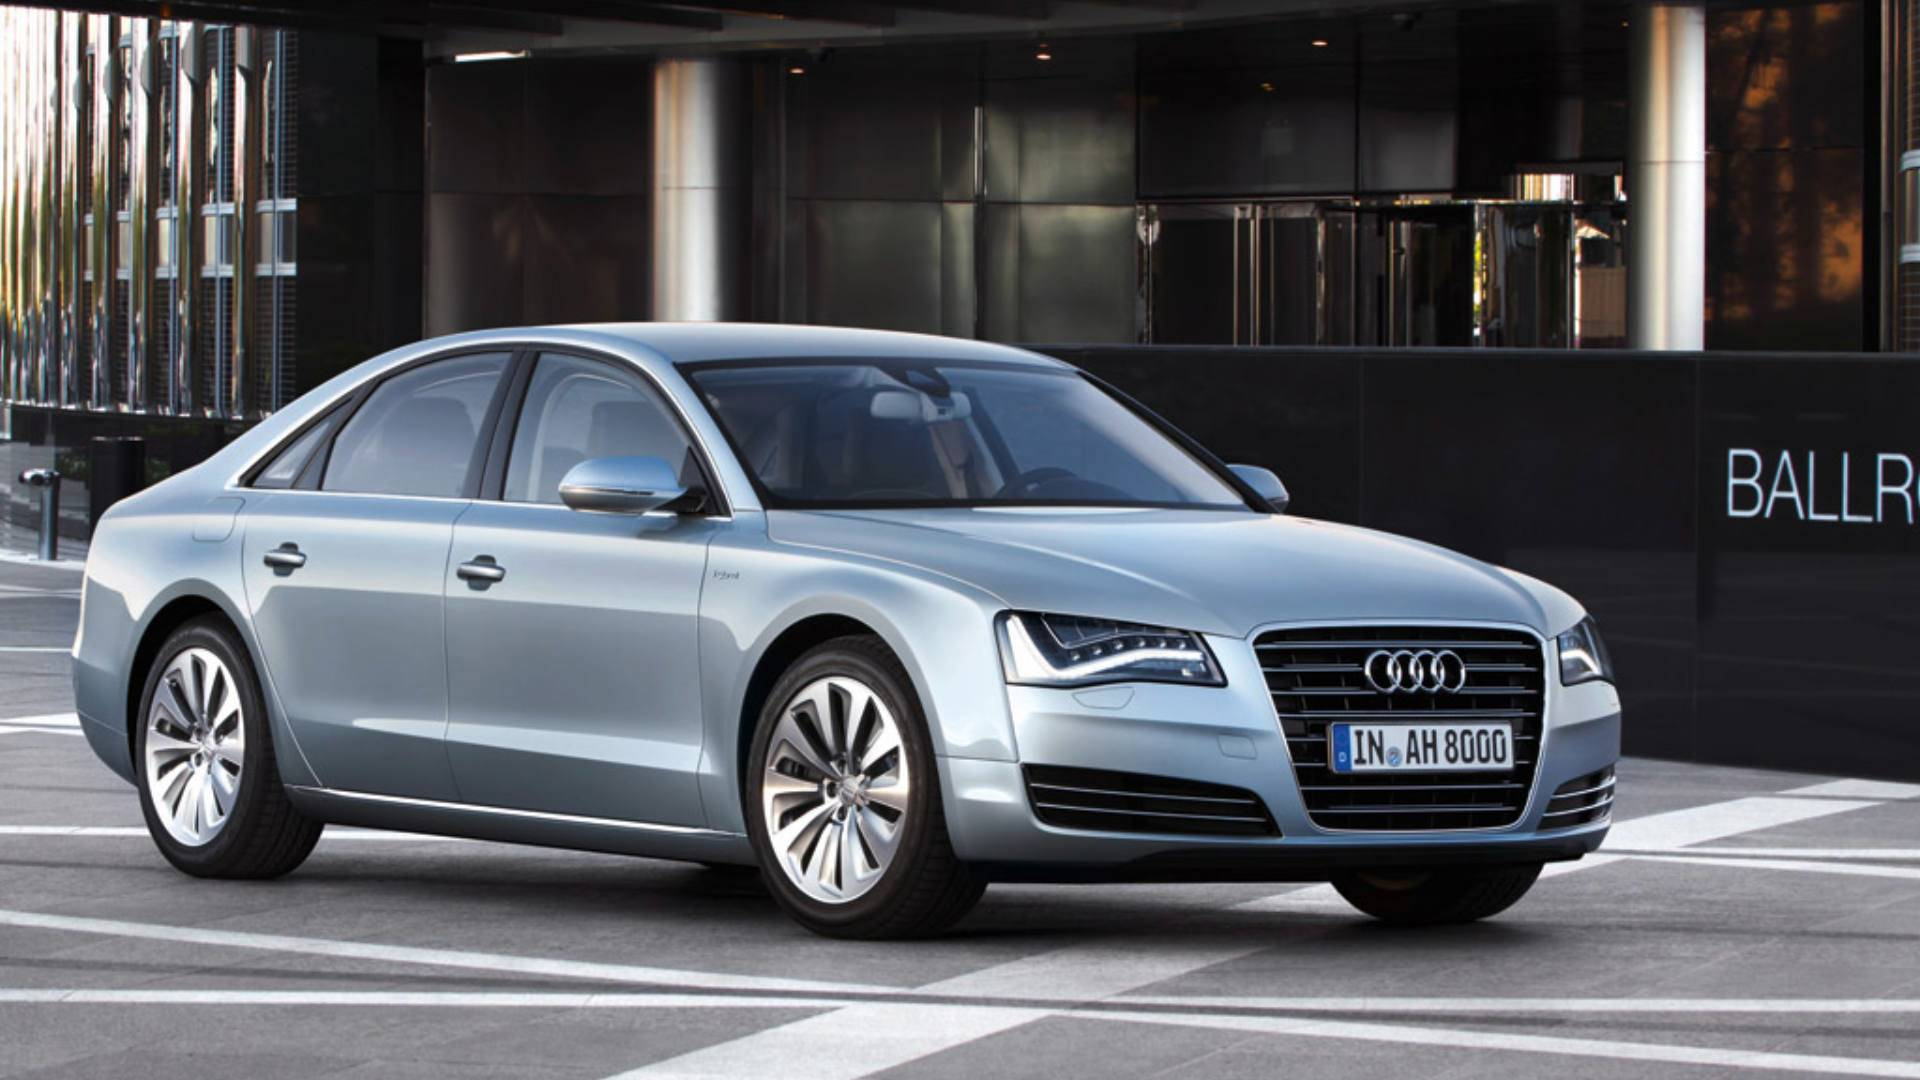 2012 audi a8 hd wallpapers car news and review. Black Bedroom Furniture Sets. Home Design Ideas